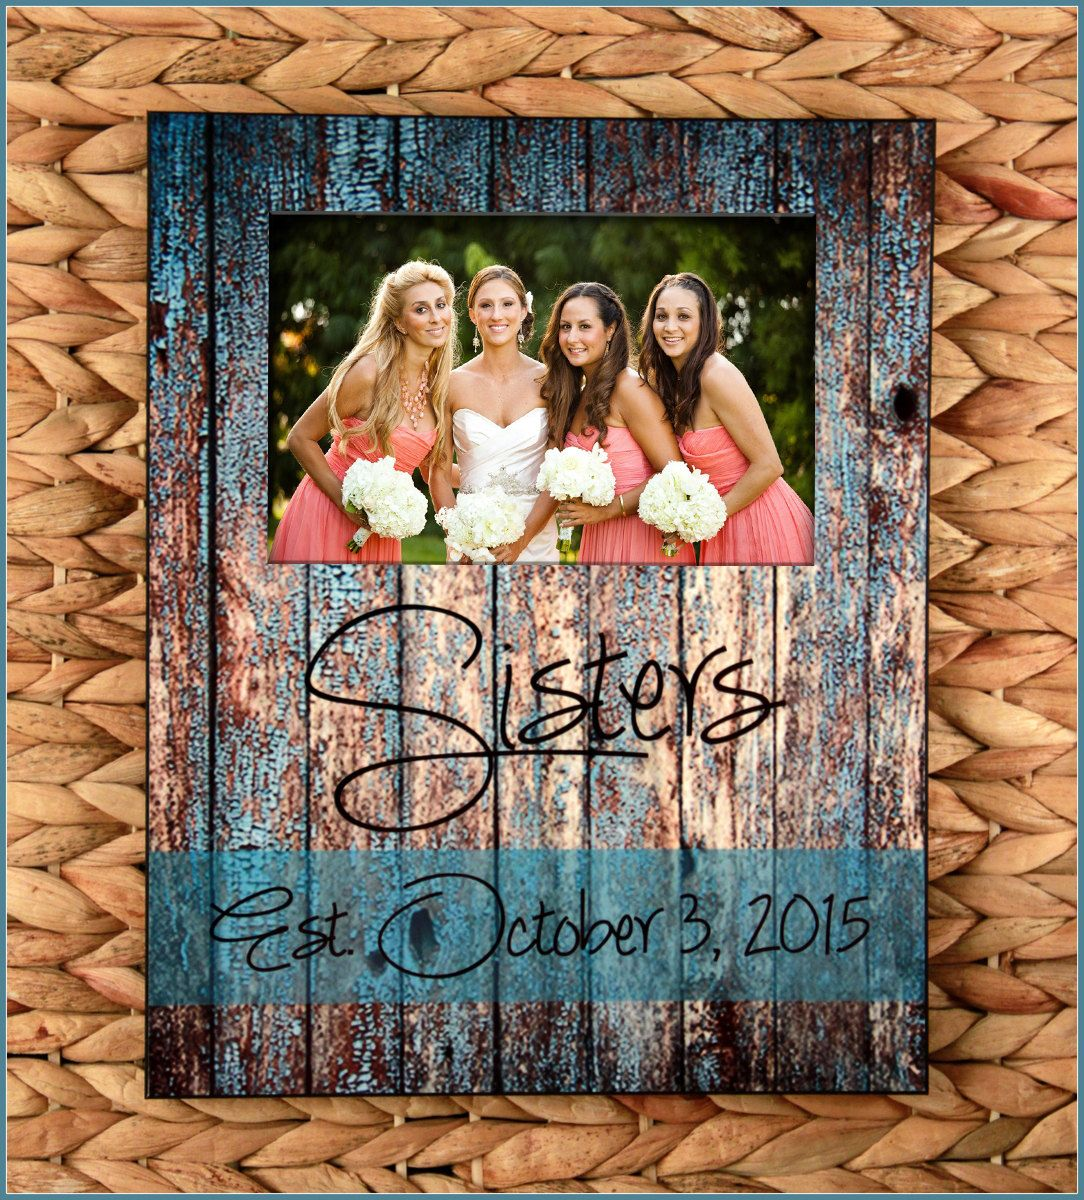 Sisters Custom Photo Frame, New Sister In Law Gift